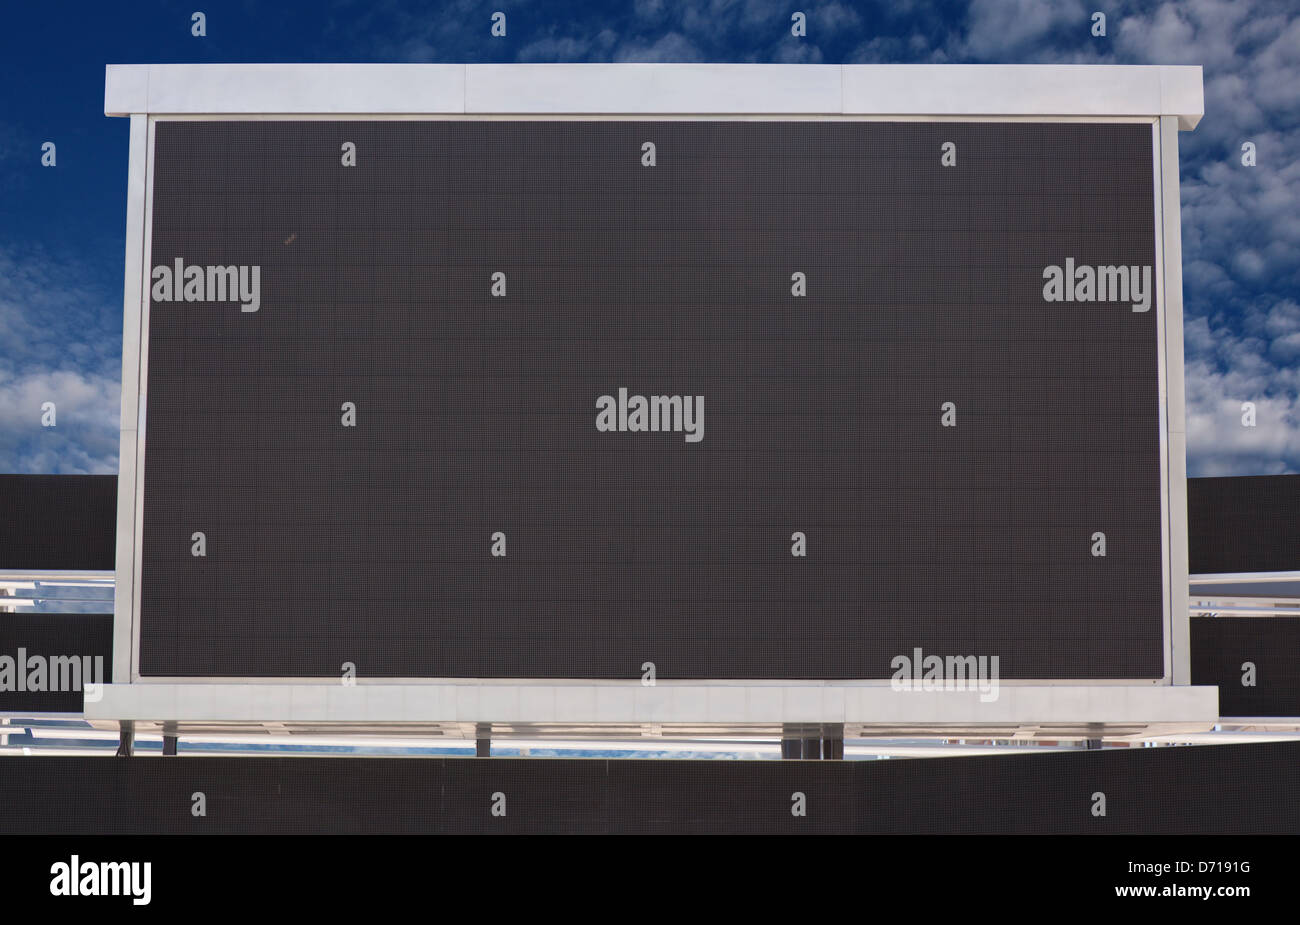 outdoor television screen monitor - Stock Image